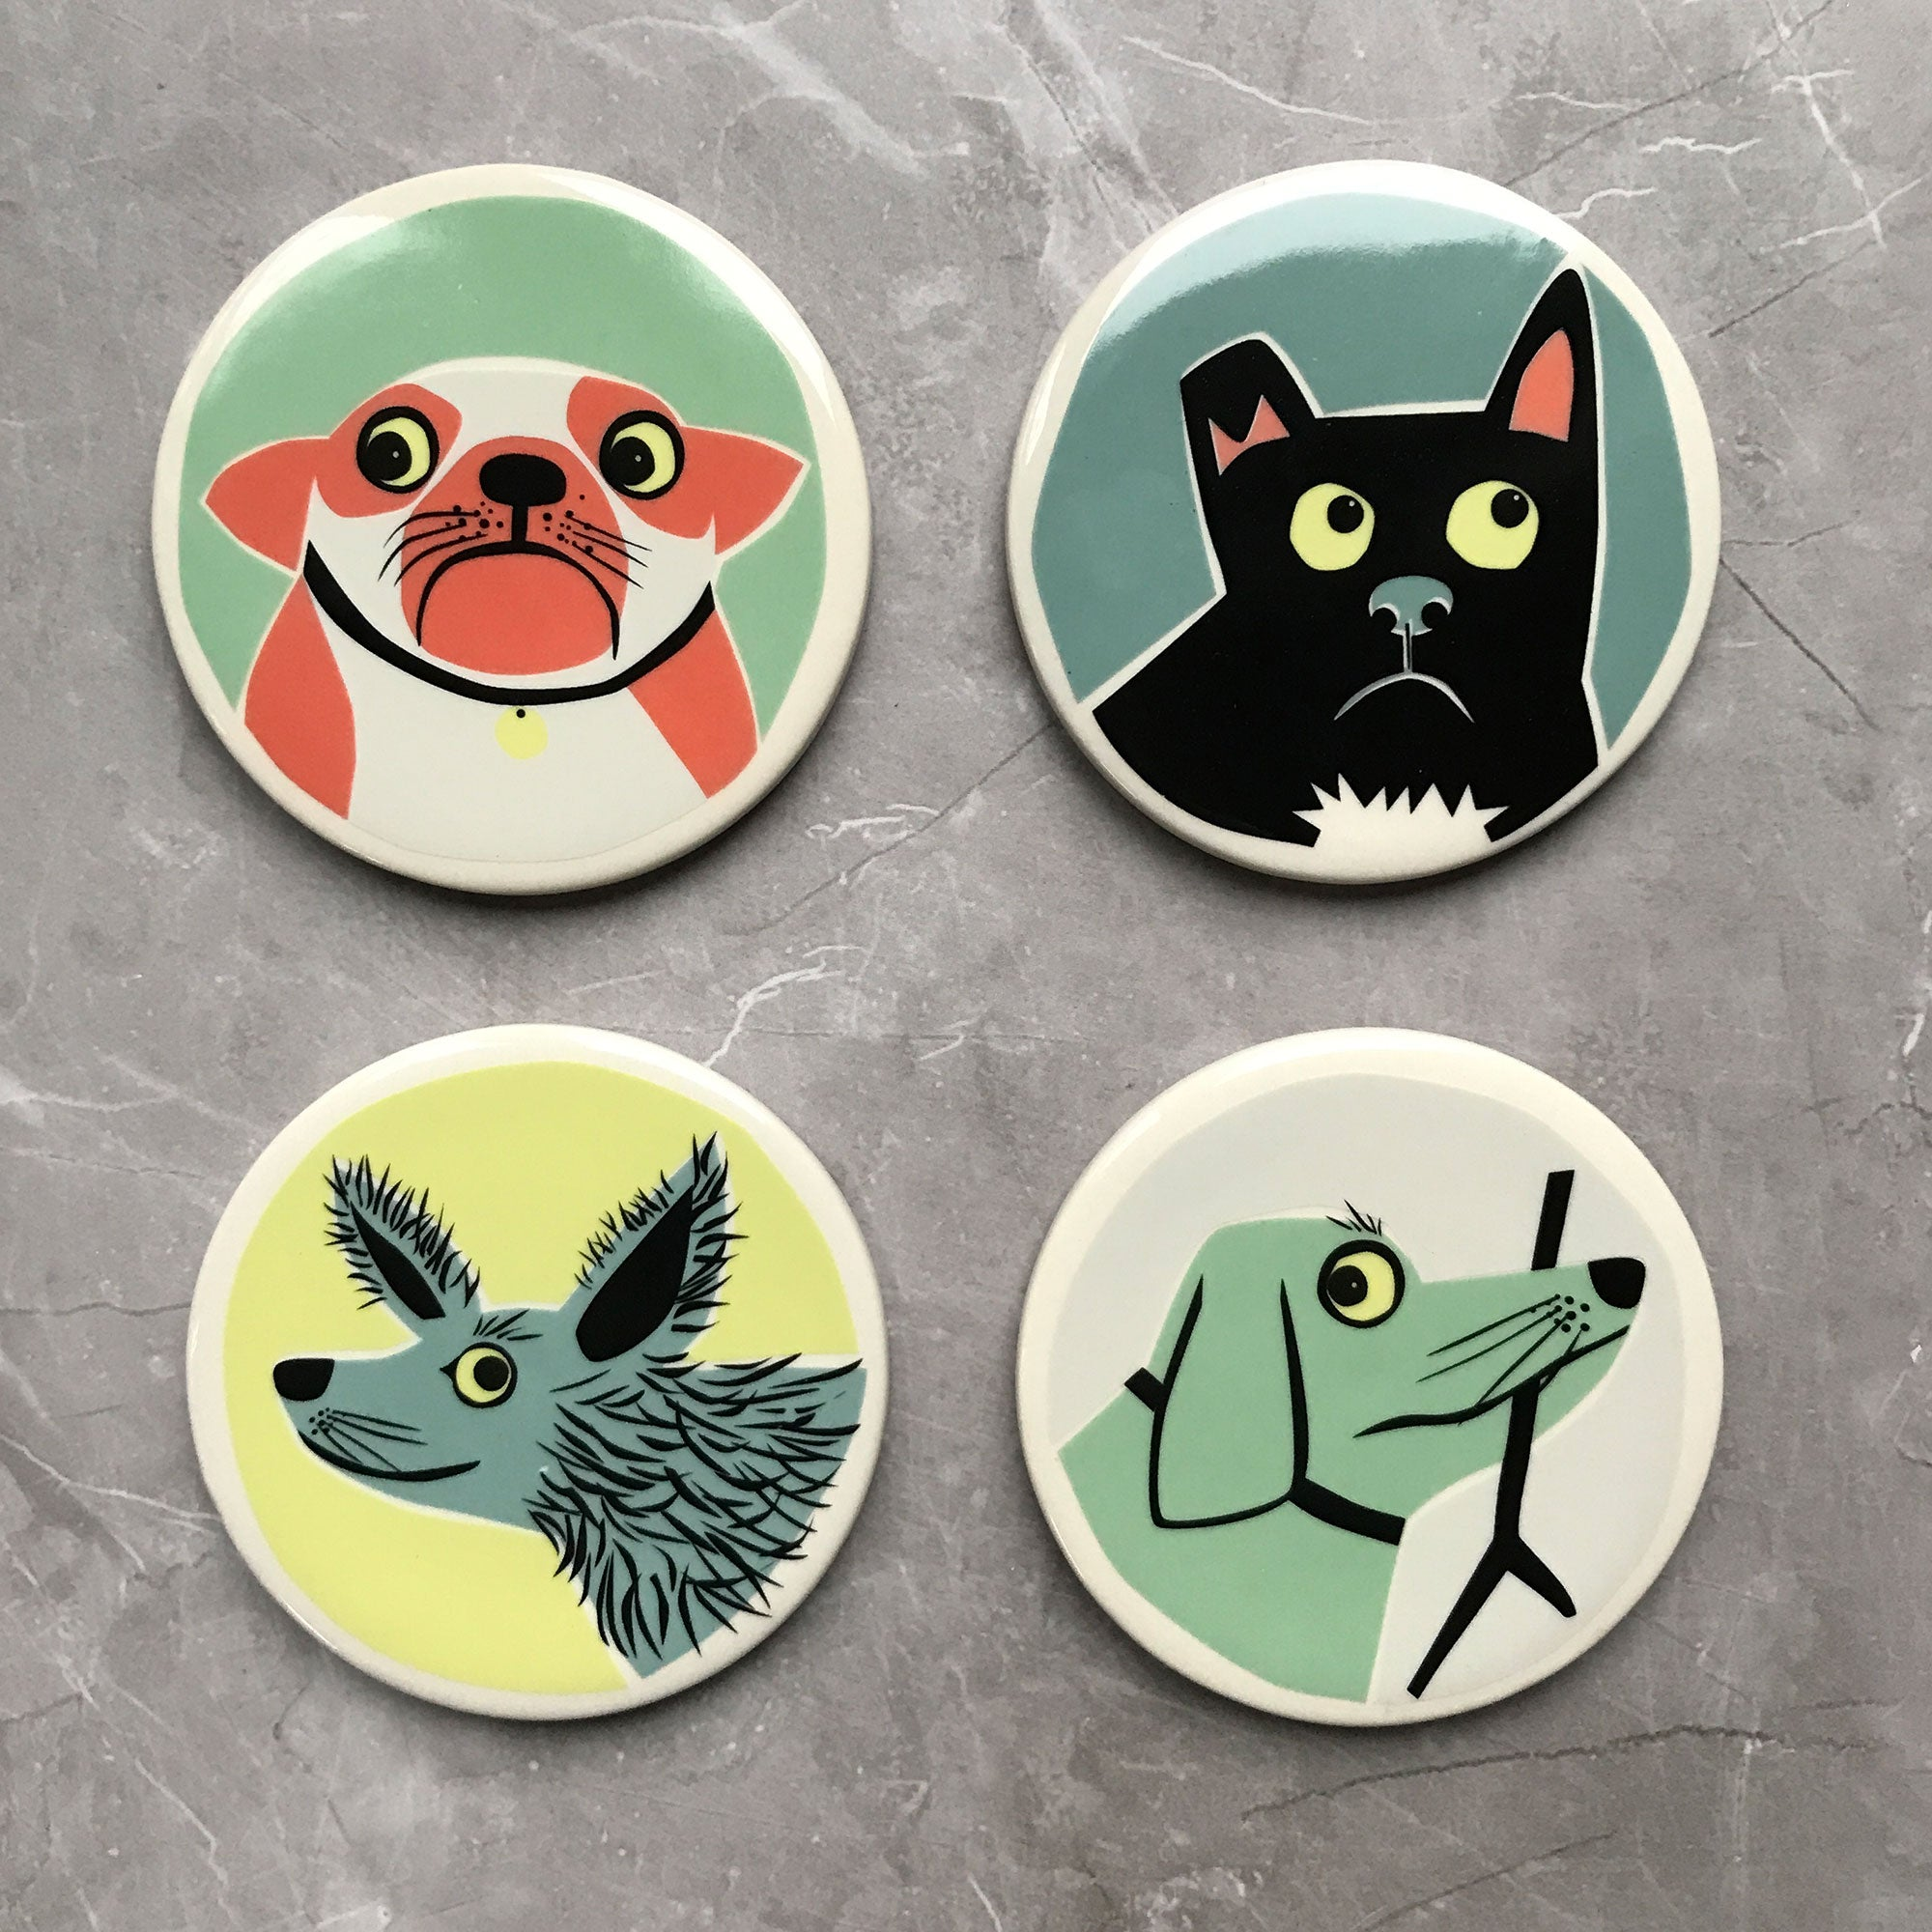 Ceramic Dog Coasters | Box Set of 4